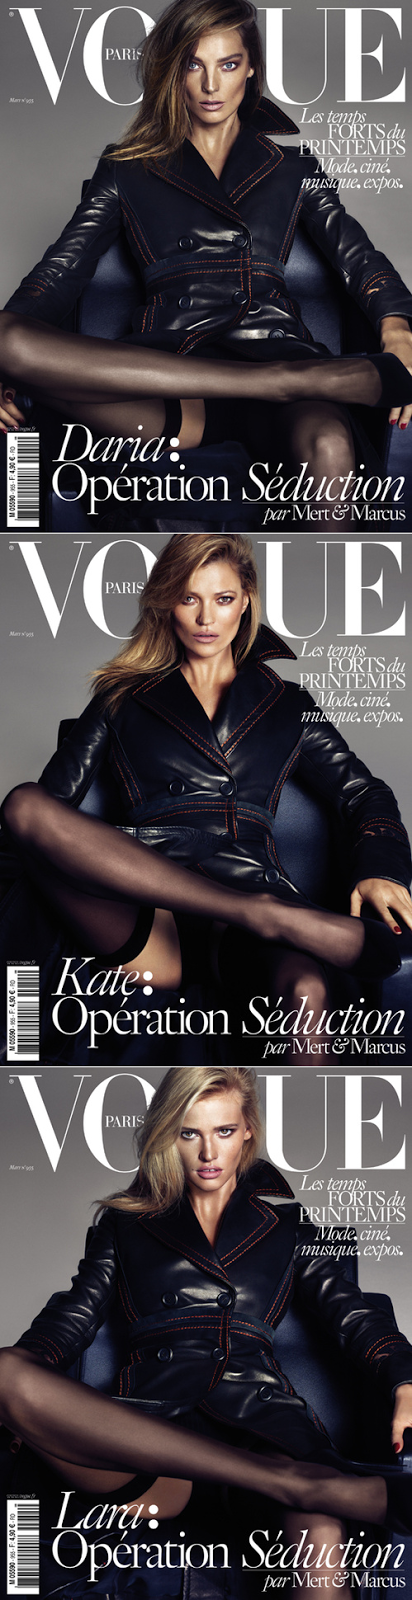 WANTED: VOGUE PARIS MARCH 2015.